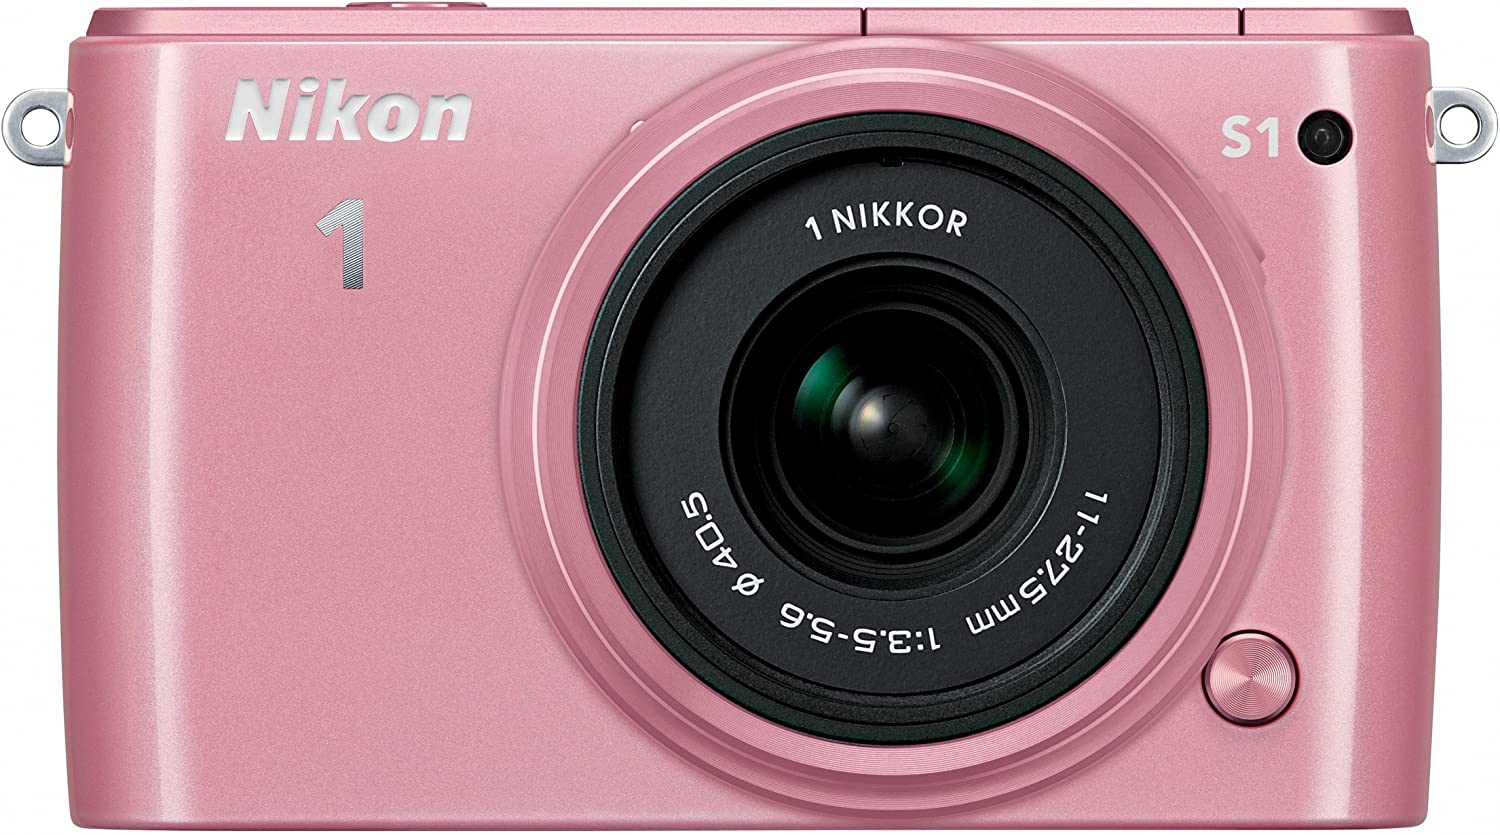 Nikon 1 S1 10.1 MP HD Digital Camera with 11-27.5mm VR 1 NIKKOR Lens (Pink)